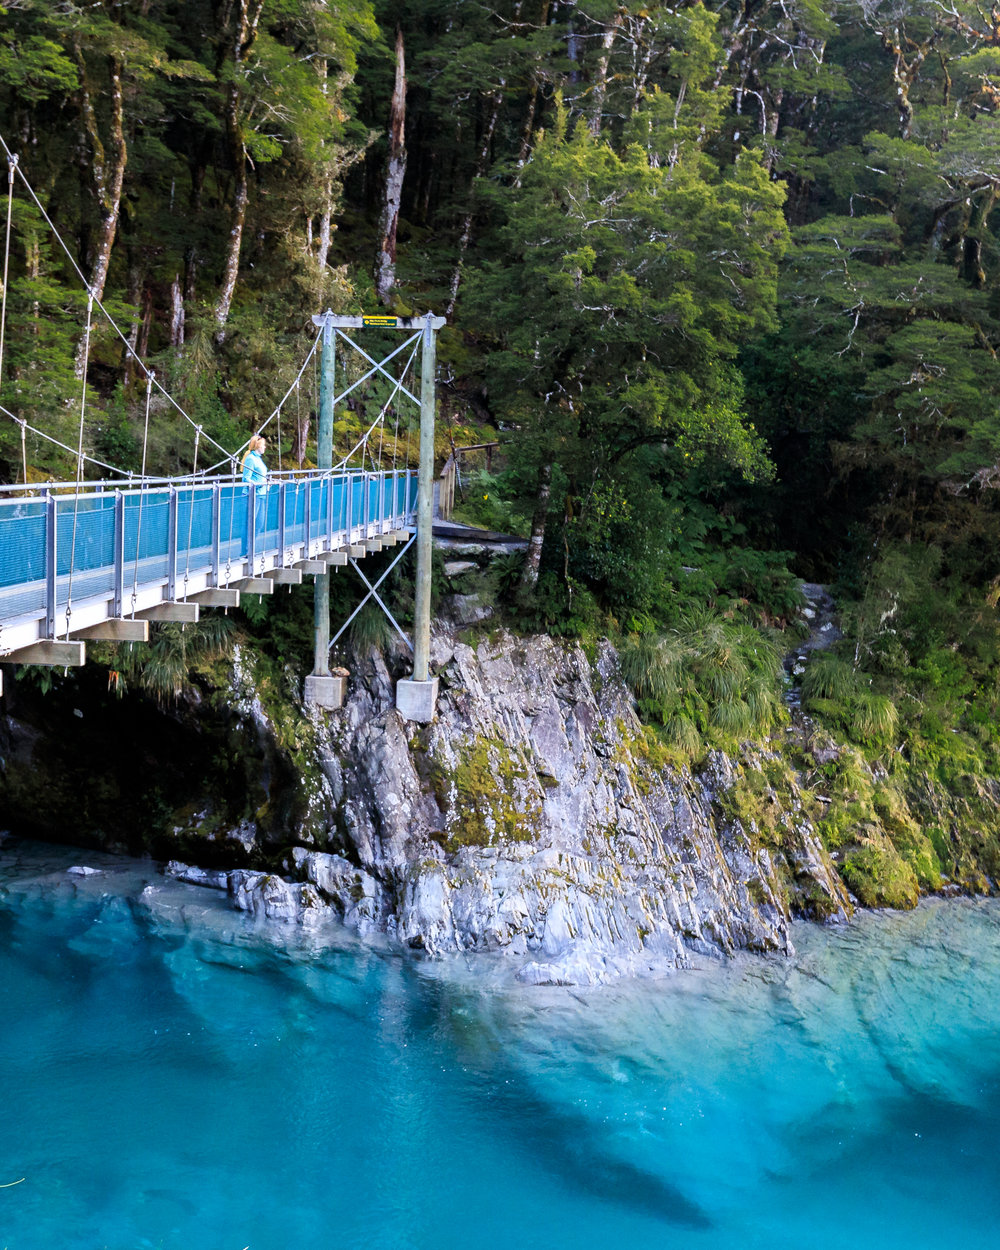 Instagrammable spots in New Zealand: Haast Blue Pools